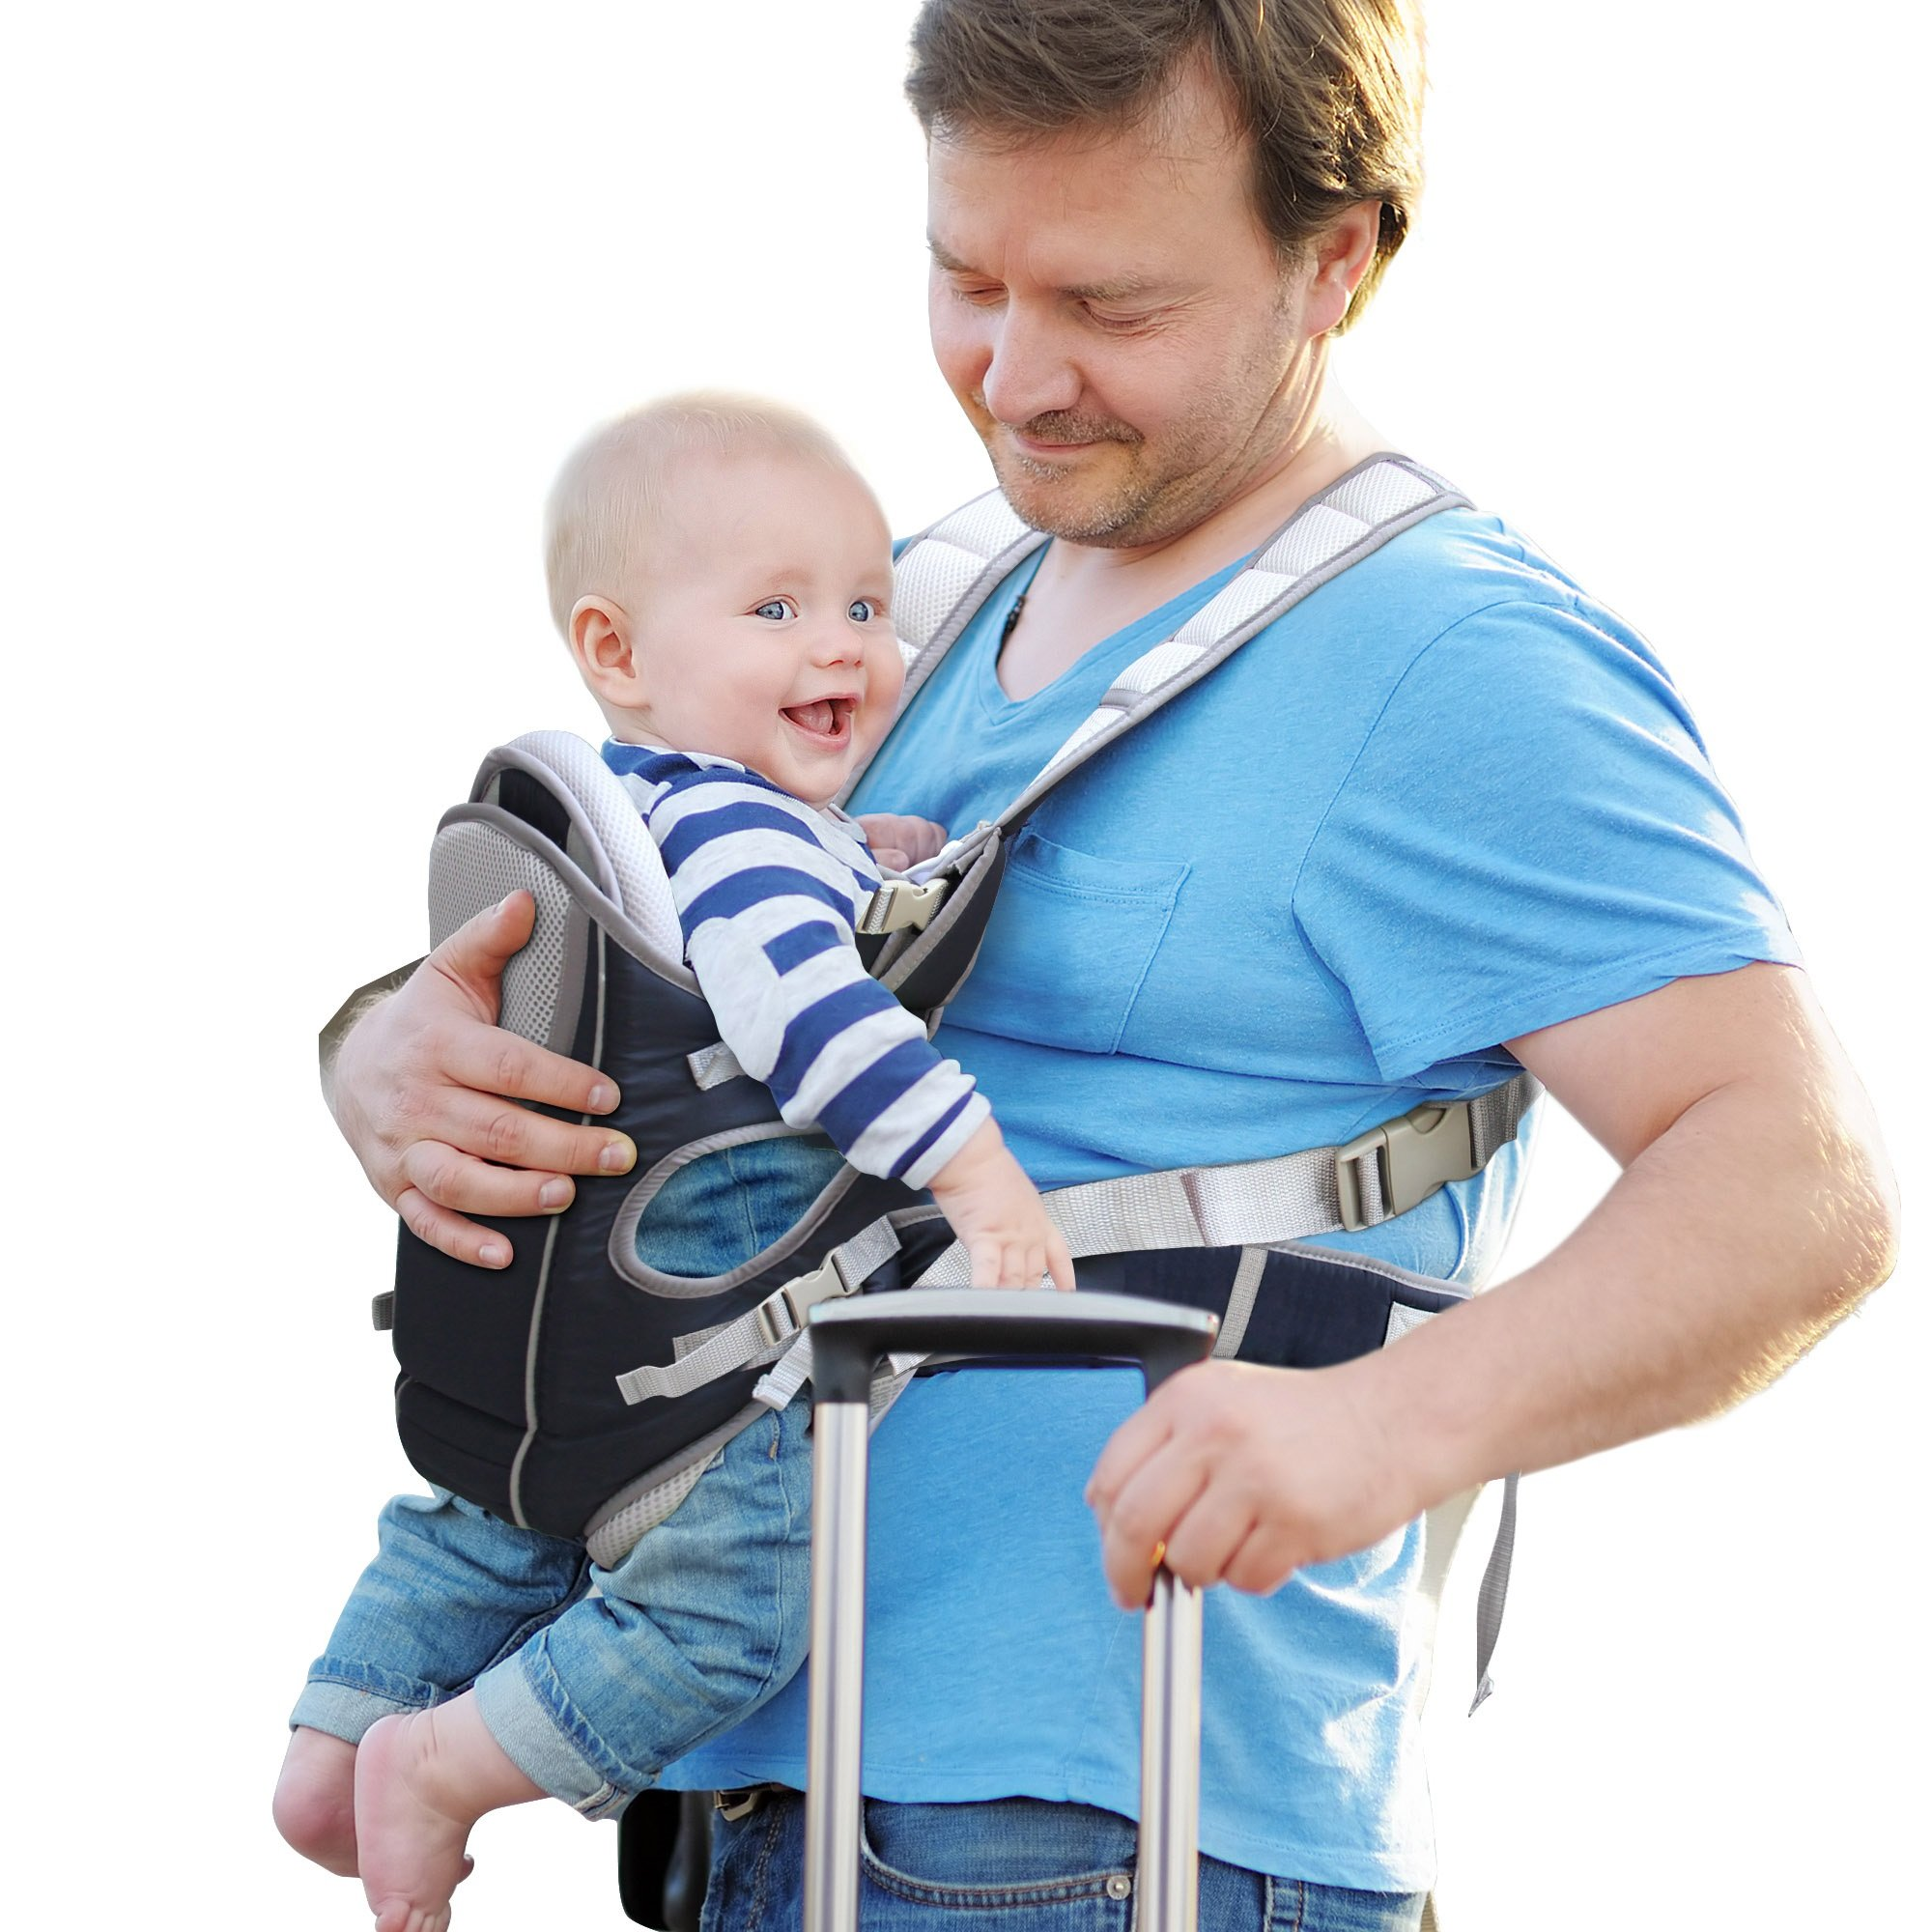 87525dbfa97 Get Quotations · MiNE Baby Carrier for Infants and Toddlers - 4 Carrying  Positions - 100% Breathable Soft